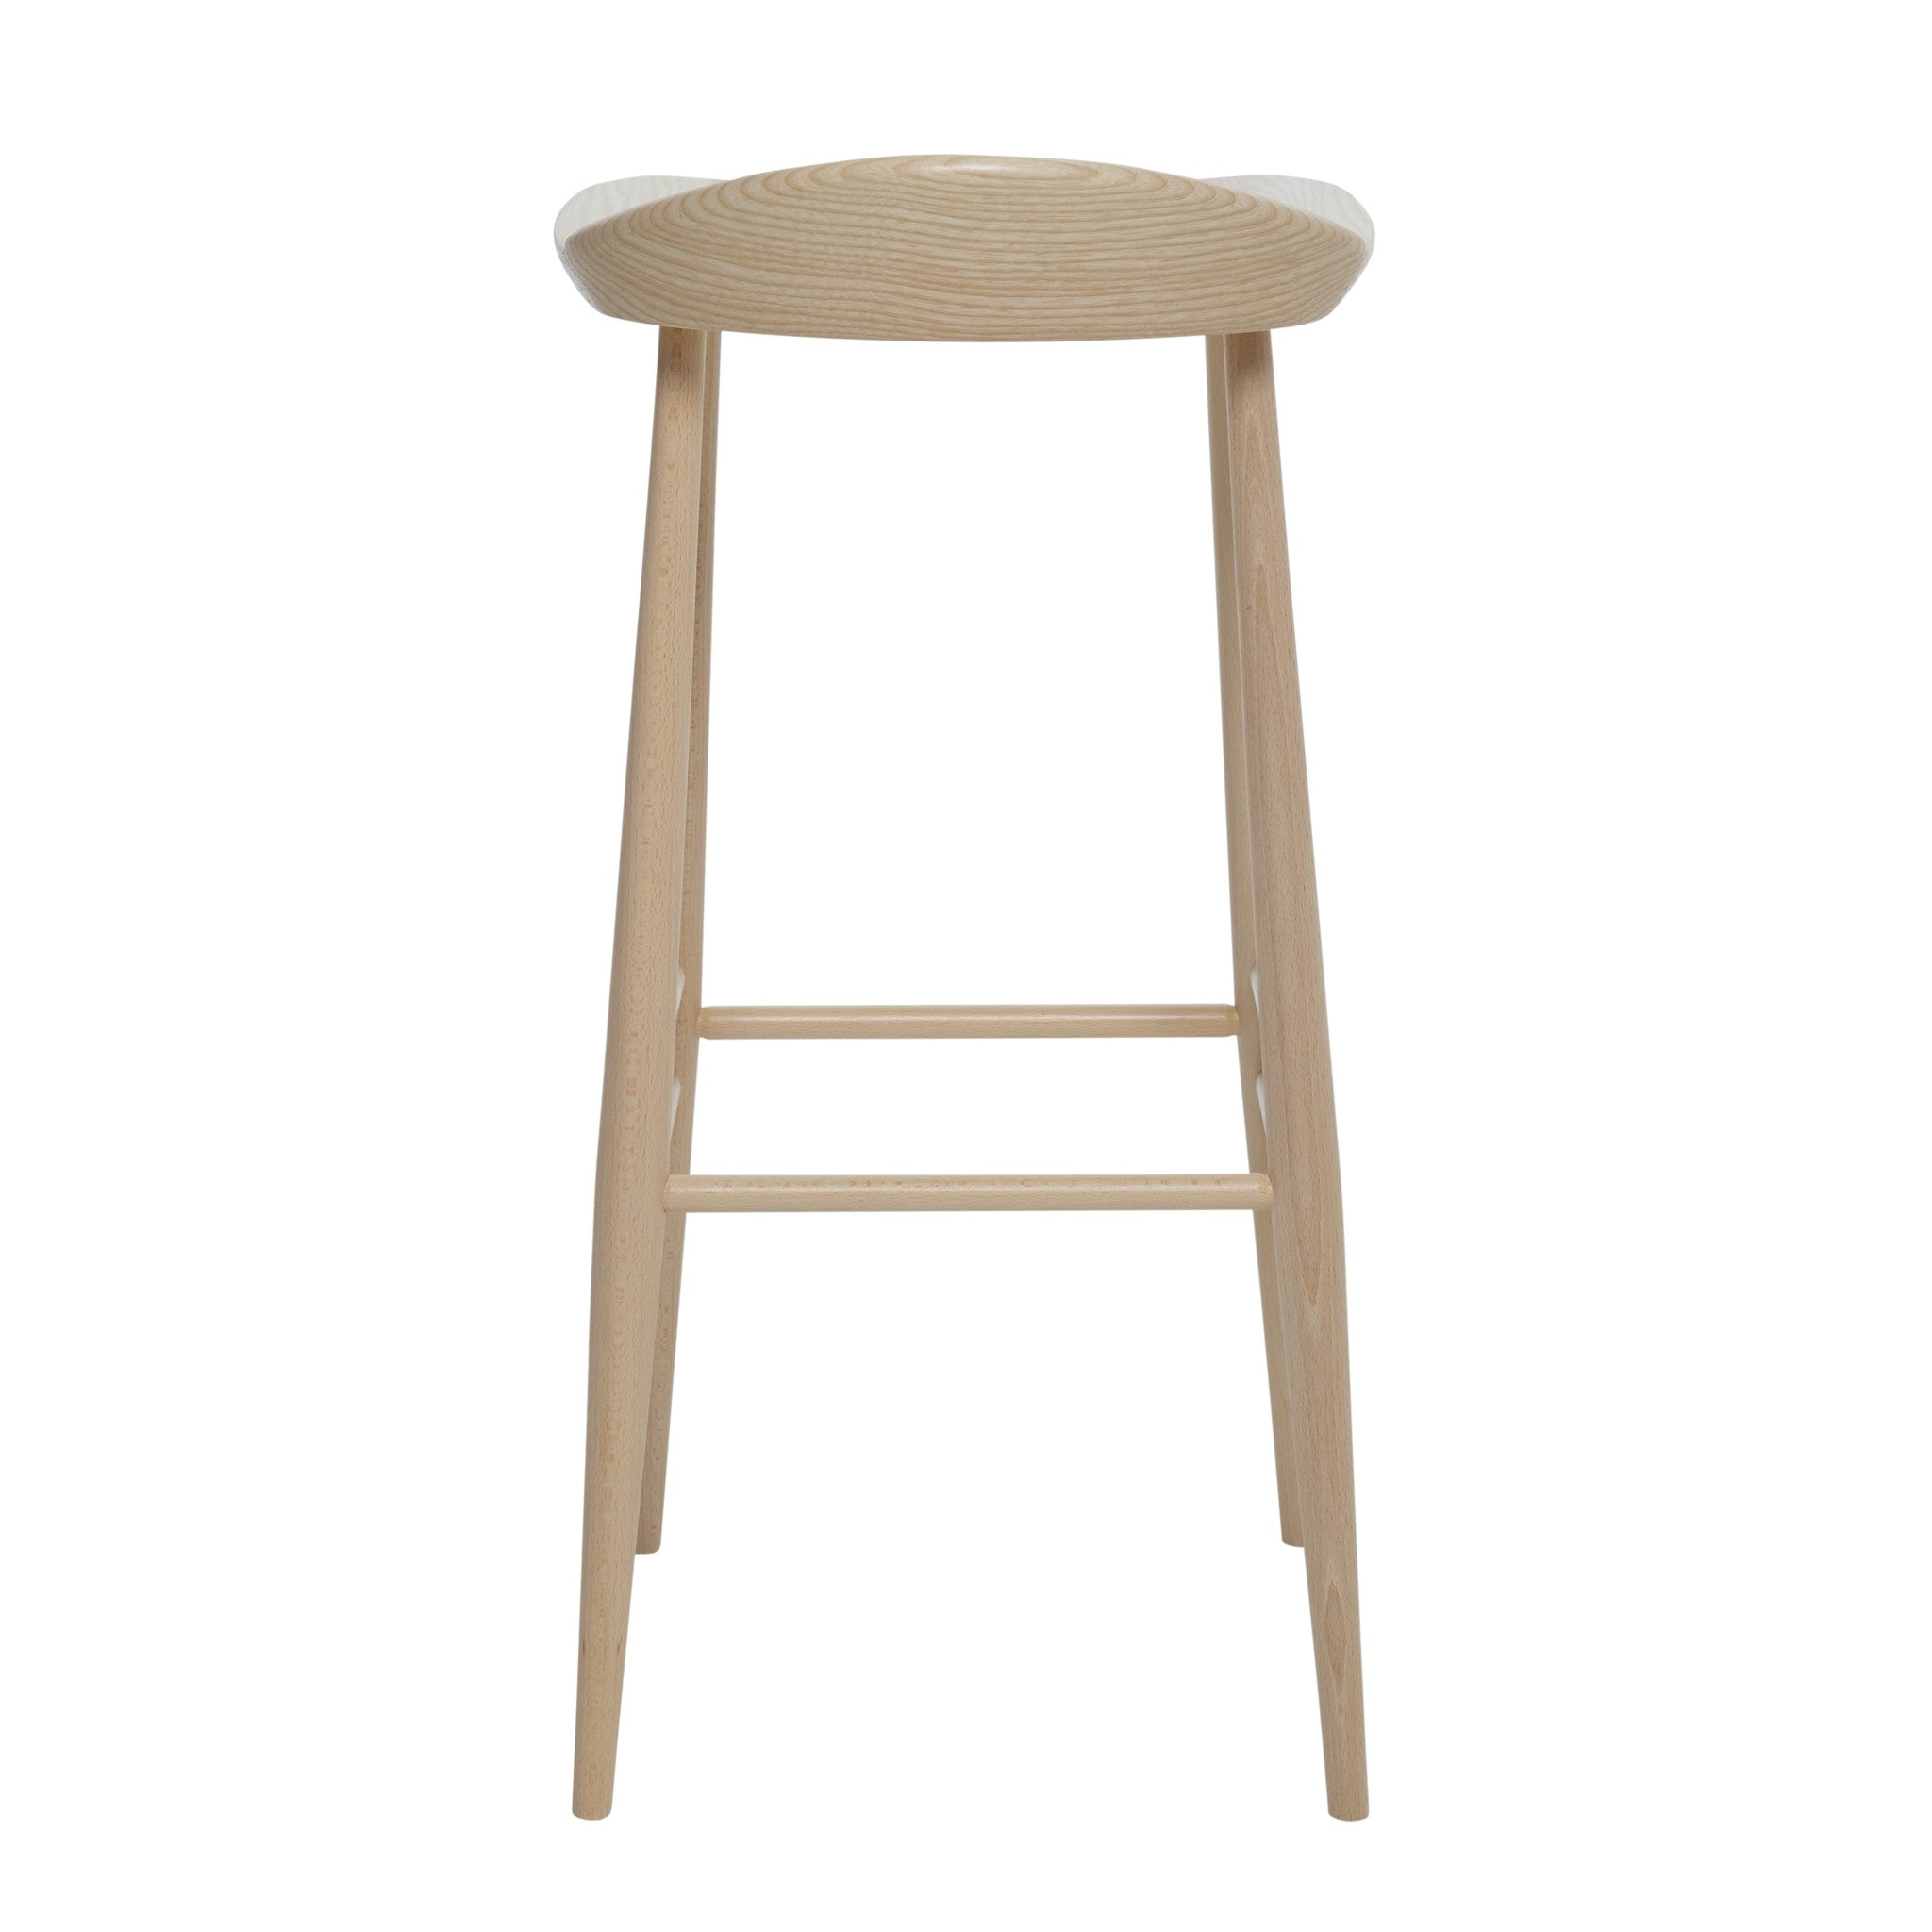 Originals Bar Stool With Back By Ercol Haus